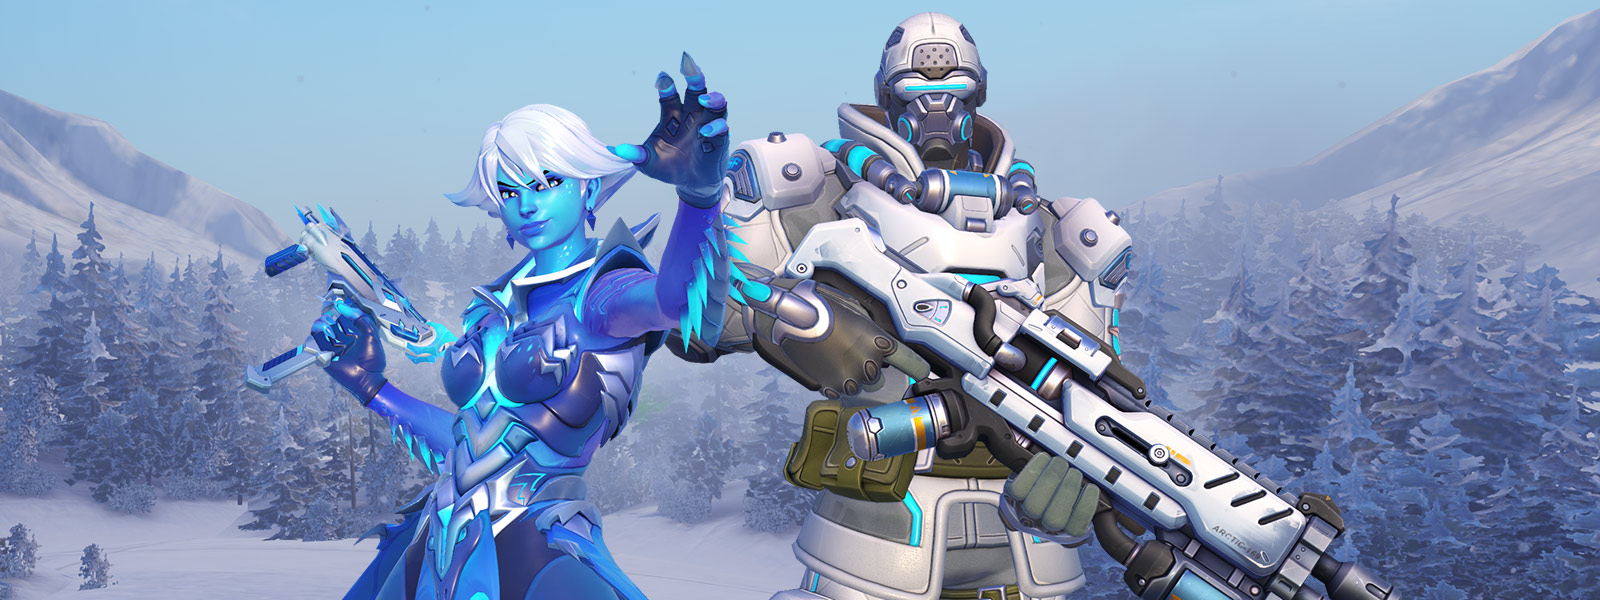 front view of 2 overwatch characters standing in the snow ...